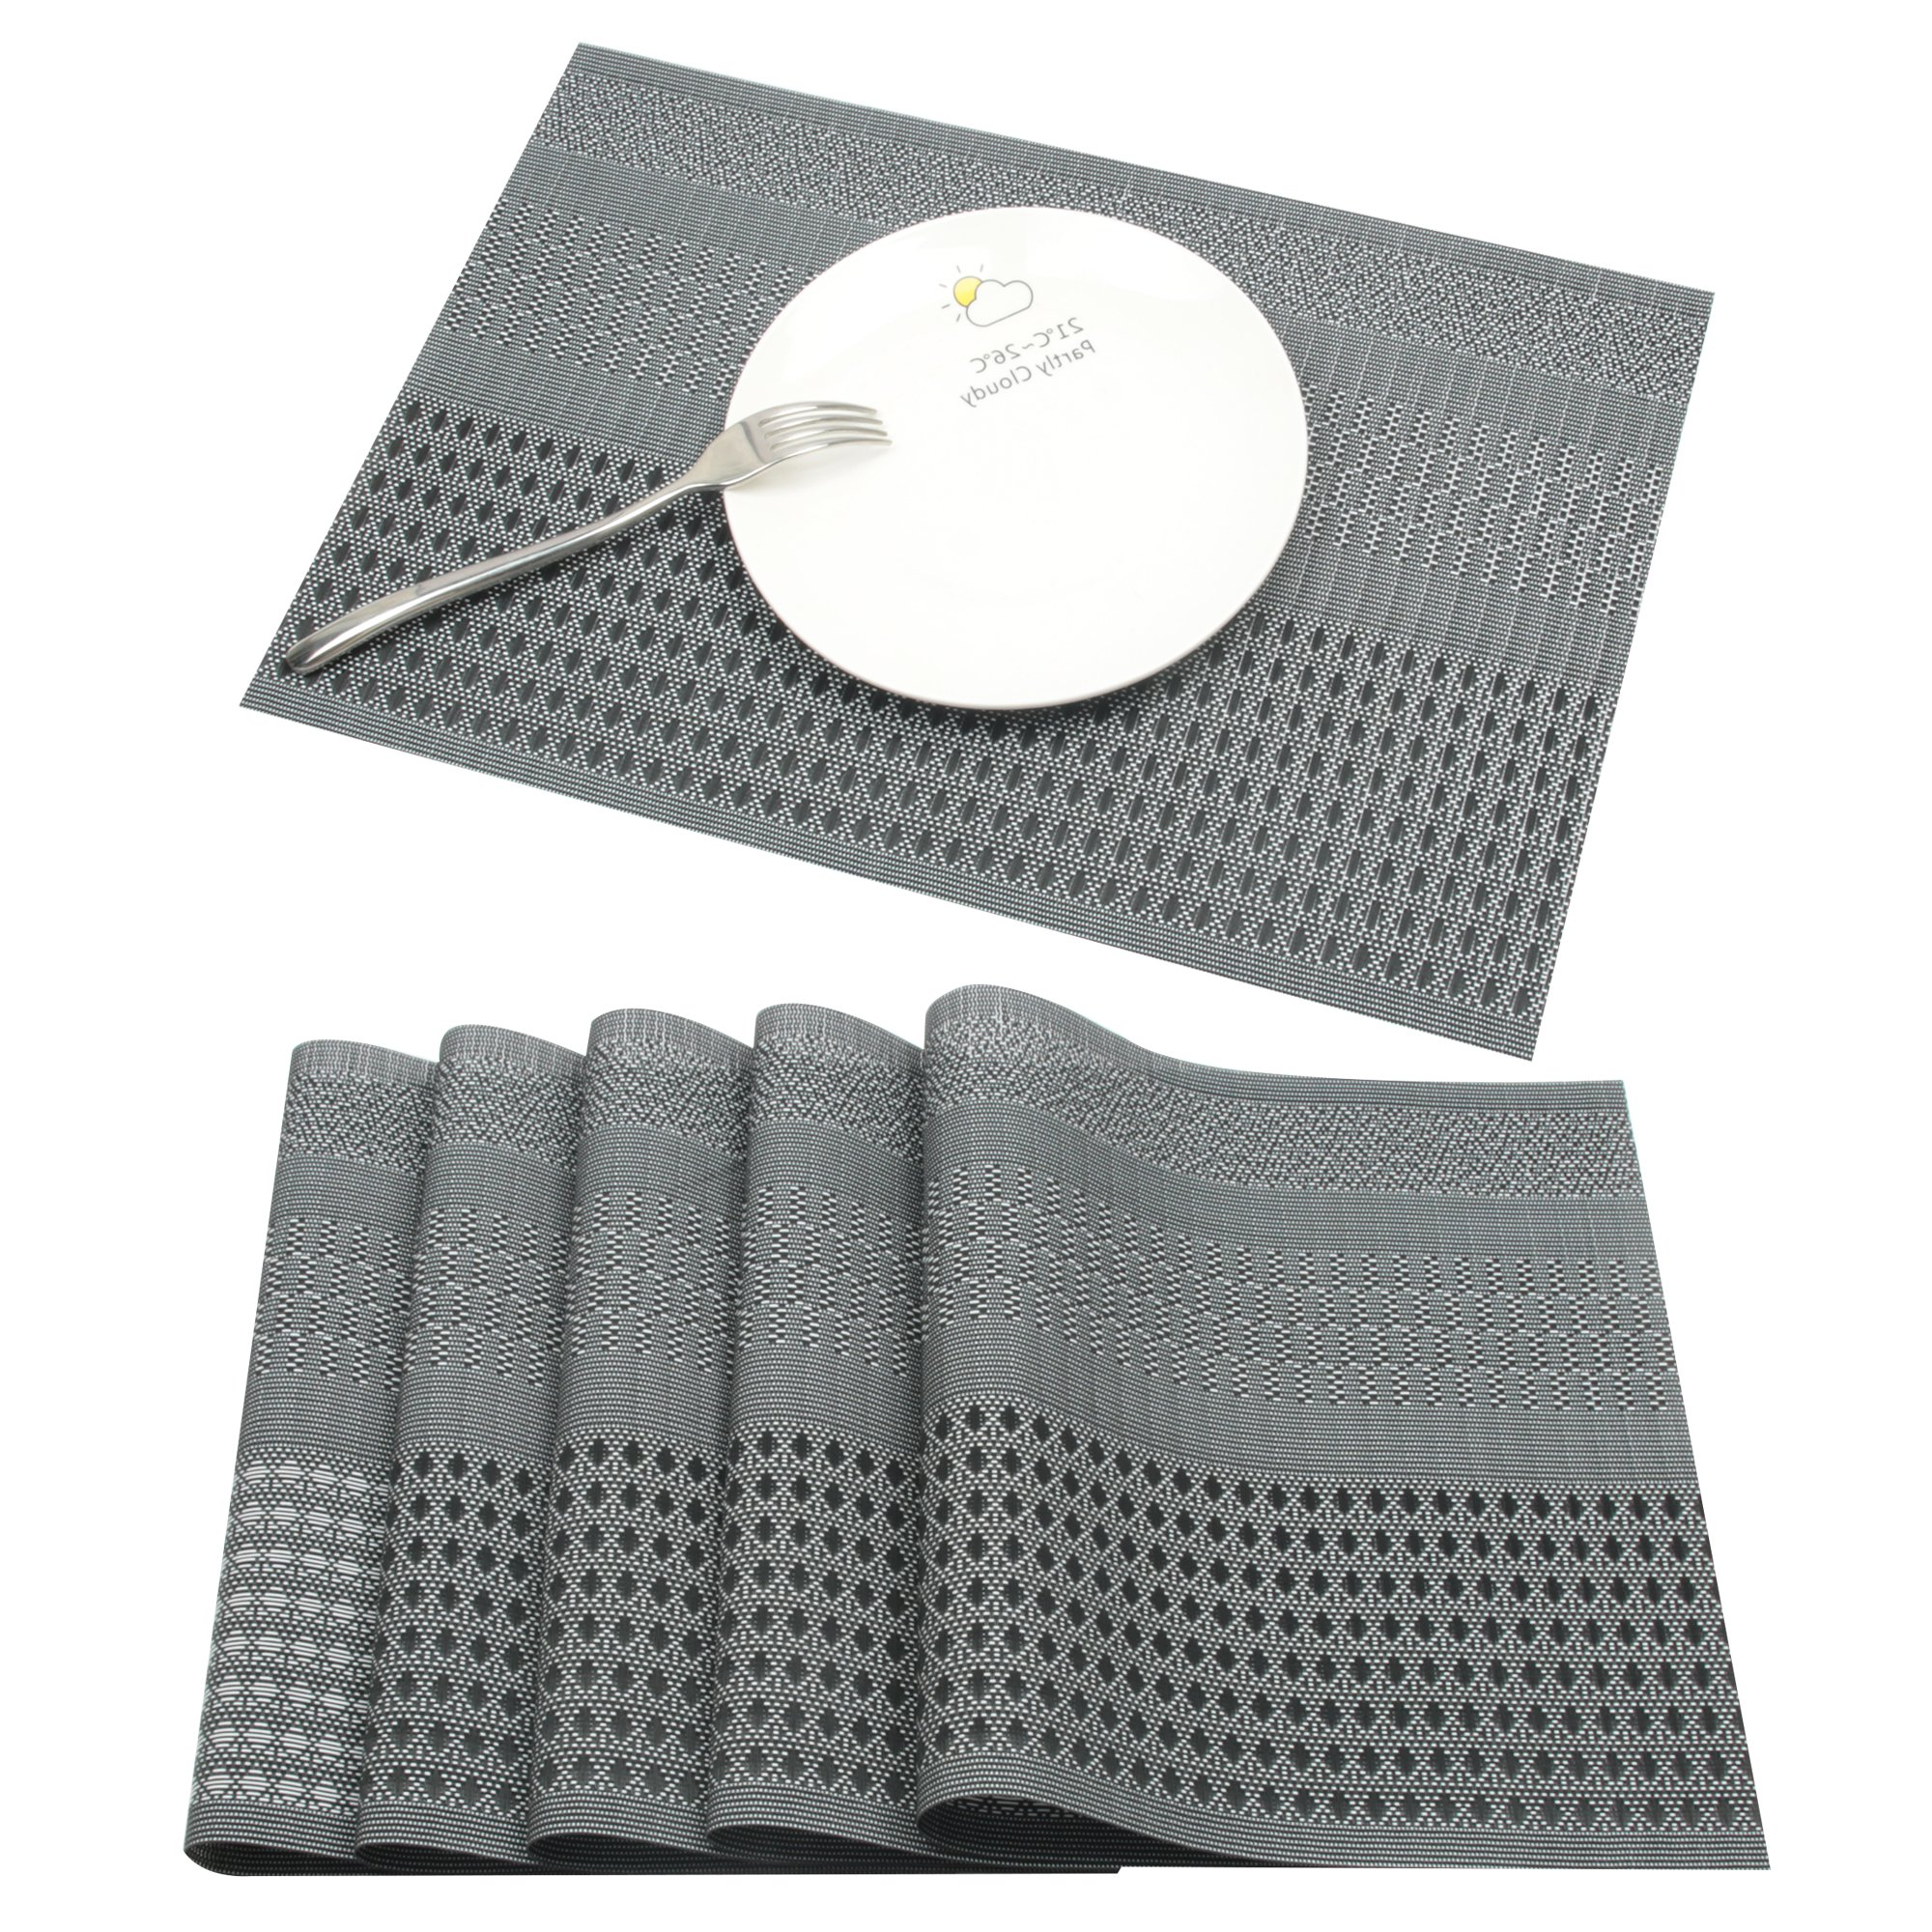 Famibay Stain Resistant Placemats PVC Non-slip Place Mats Durable Double-faced Crossweave Woven Table Mats for Kitchen Dining Table 45x30cm Dark Grey Set of 6